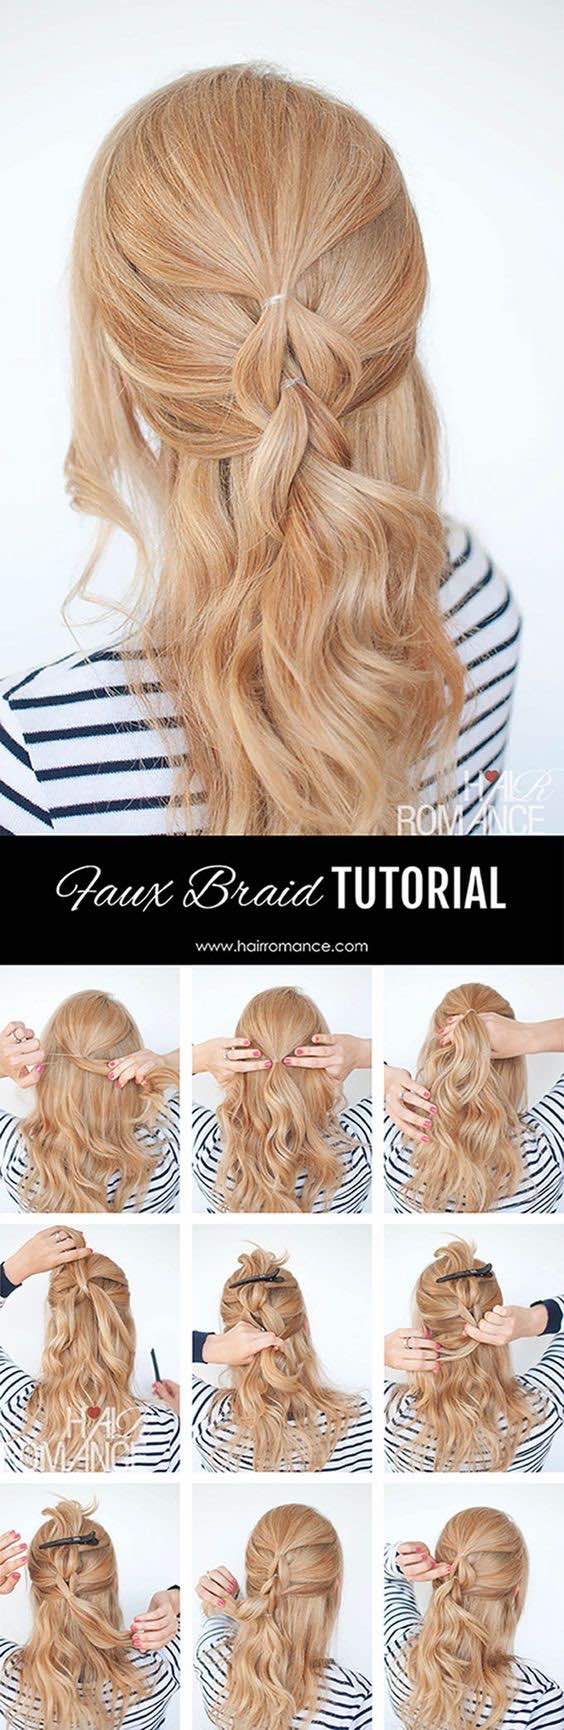 wedding-hairstyle-tutorial-4-02102016-km